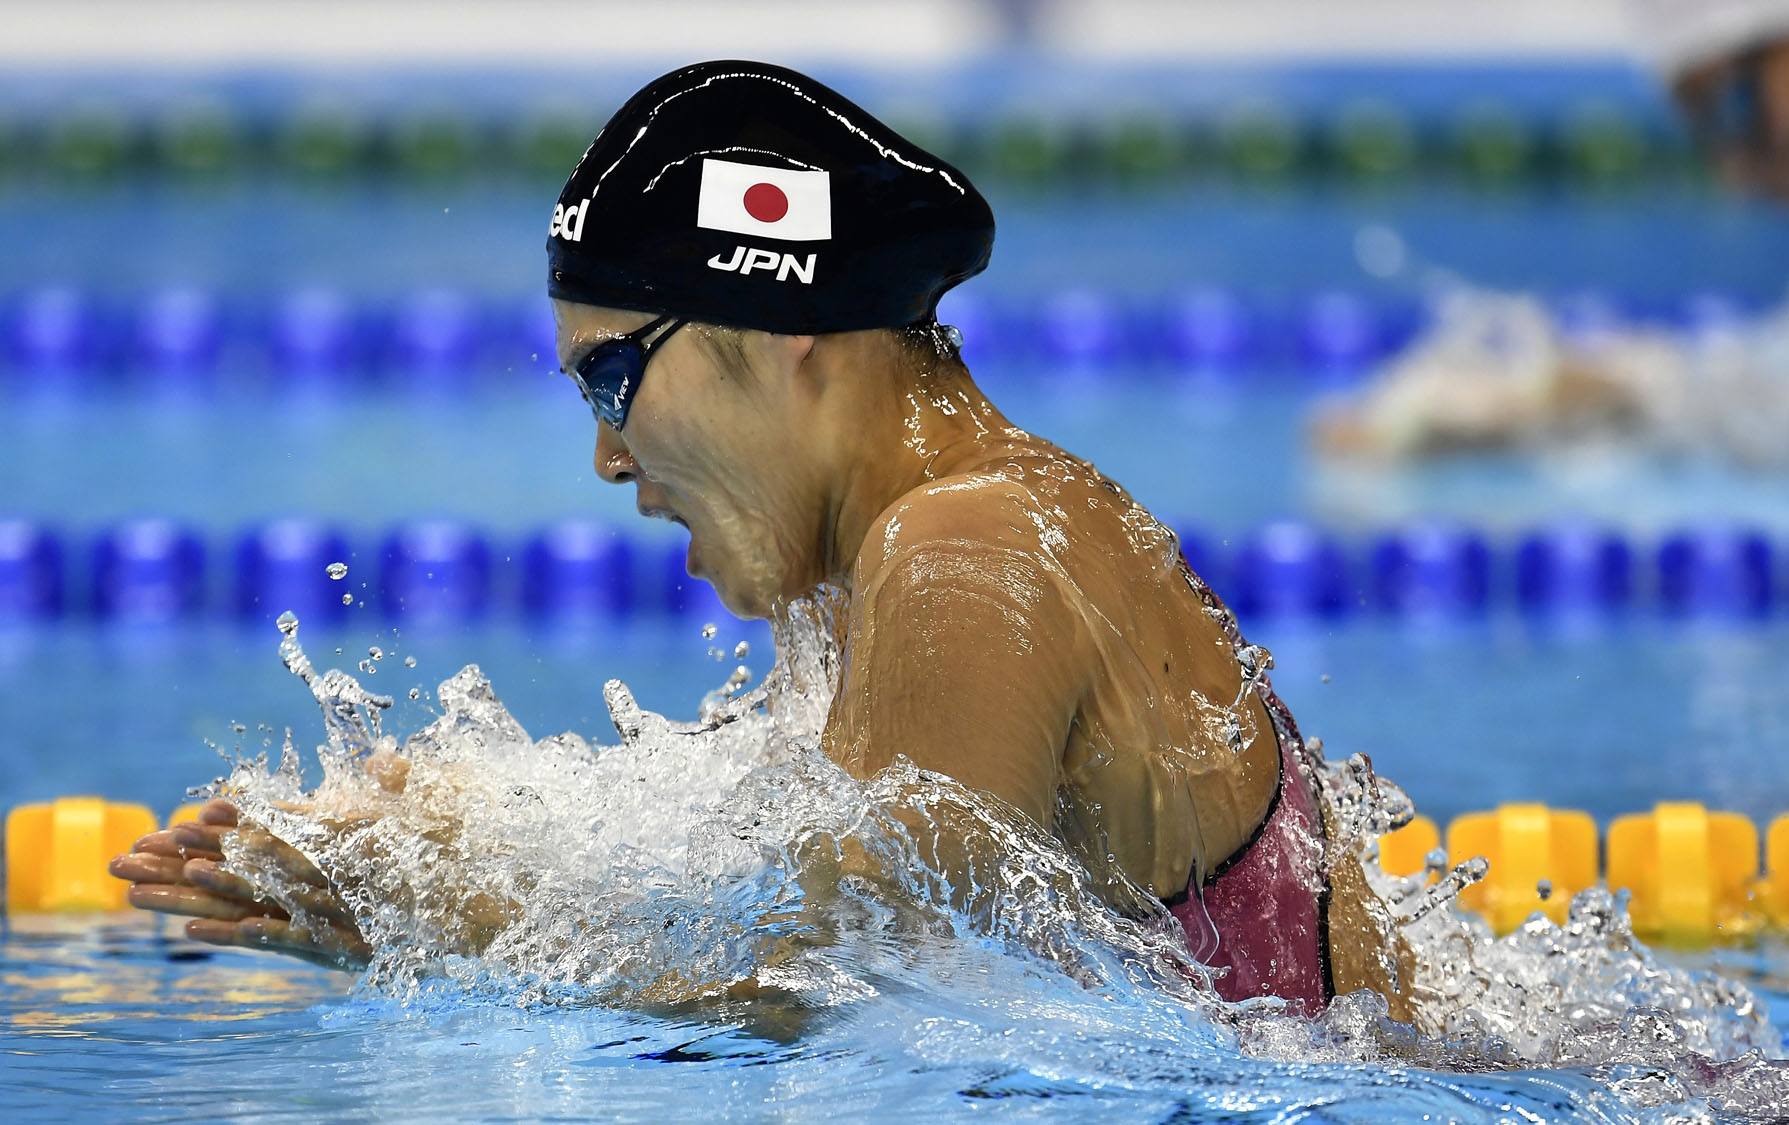 apphoto_rio olympics swimming - Olympic Swimming Breaststroke